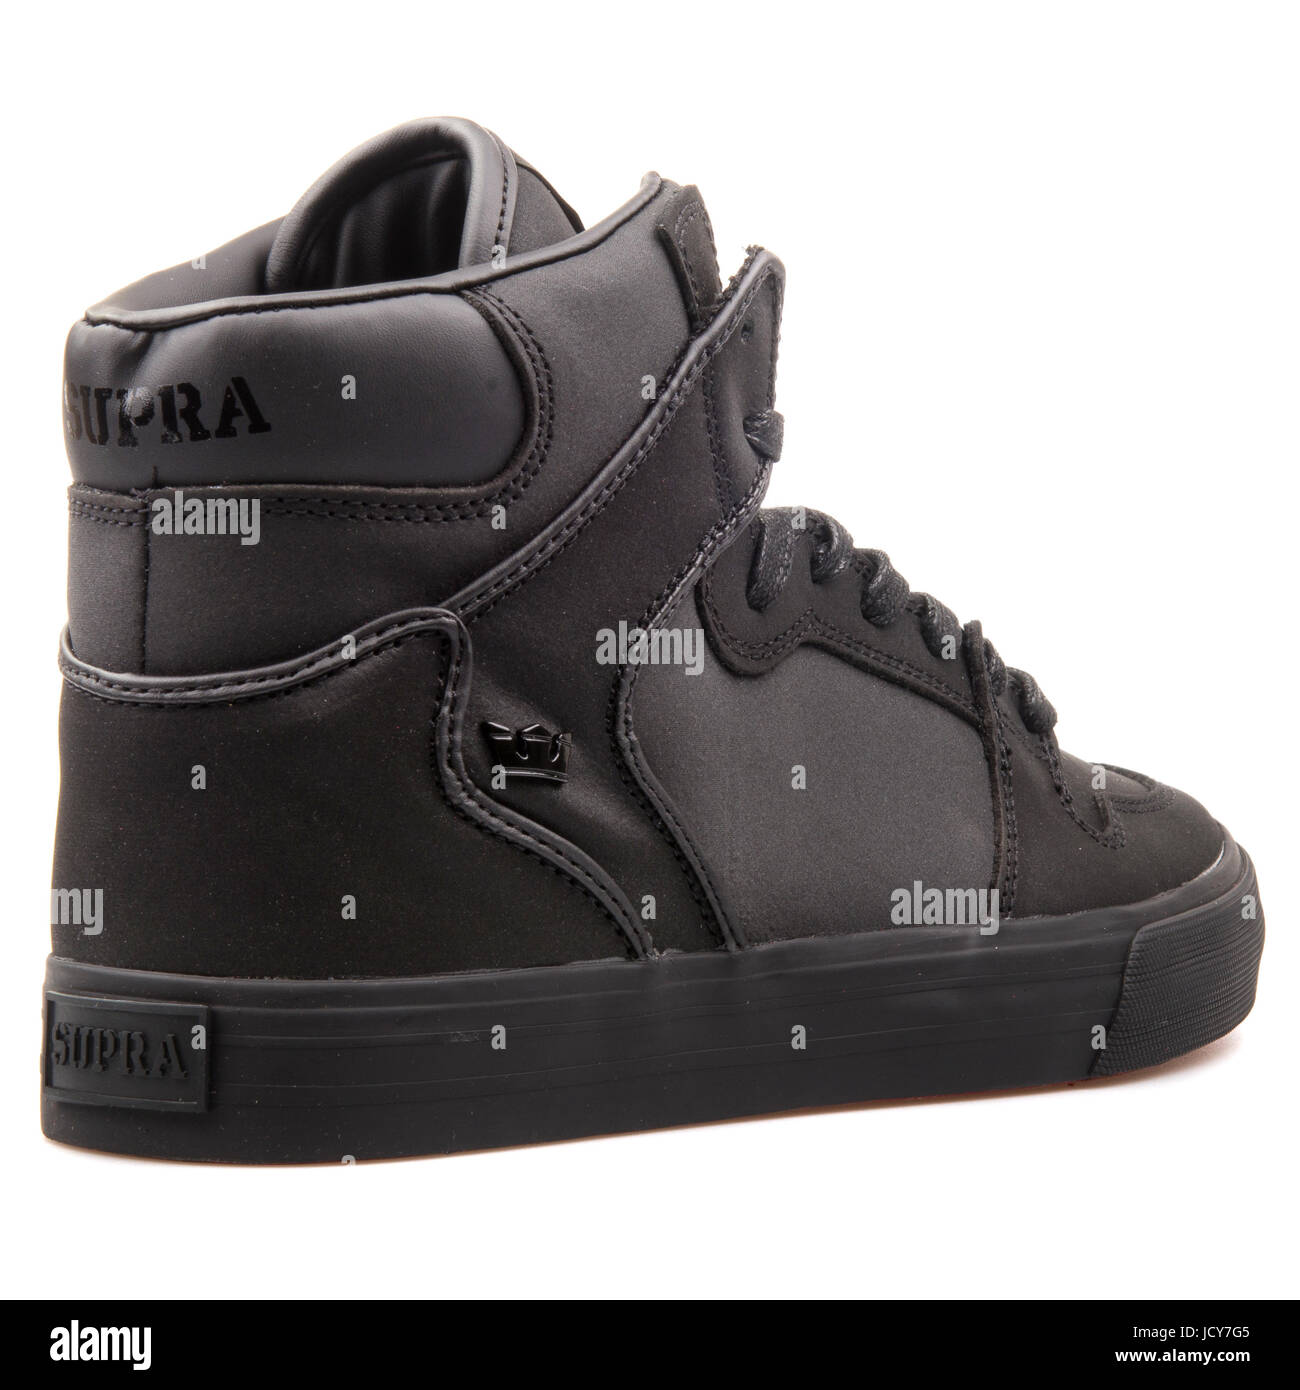 50282132a8 Supra Vaider Black Leather Men's Shoes - S28192 Stock Photo ...